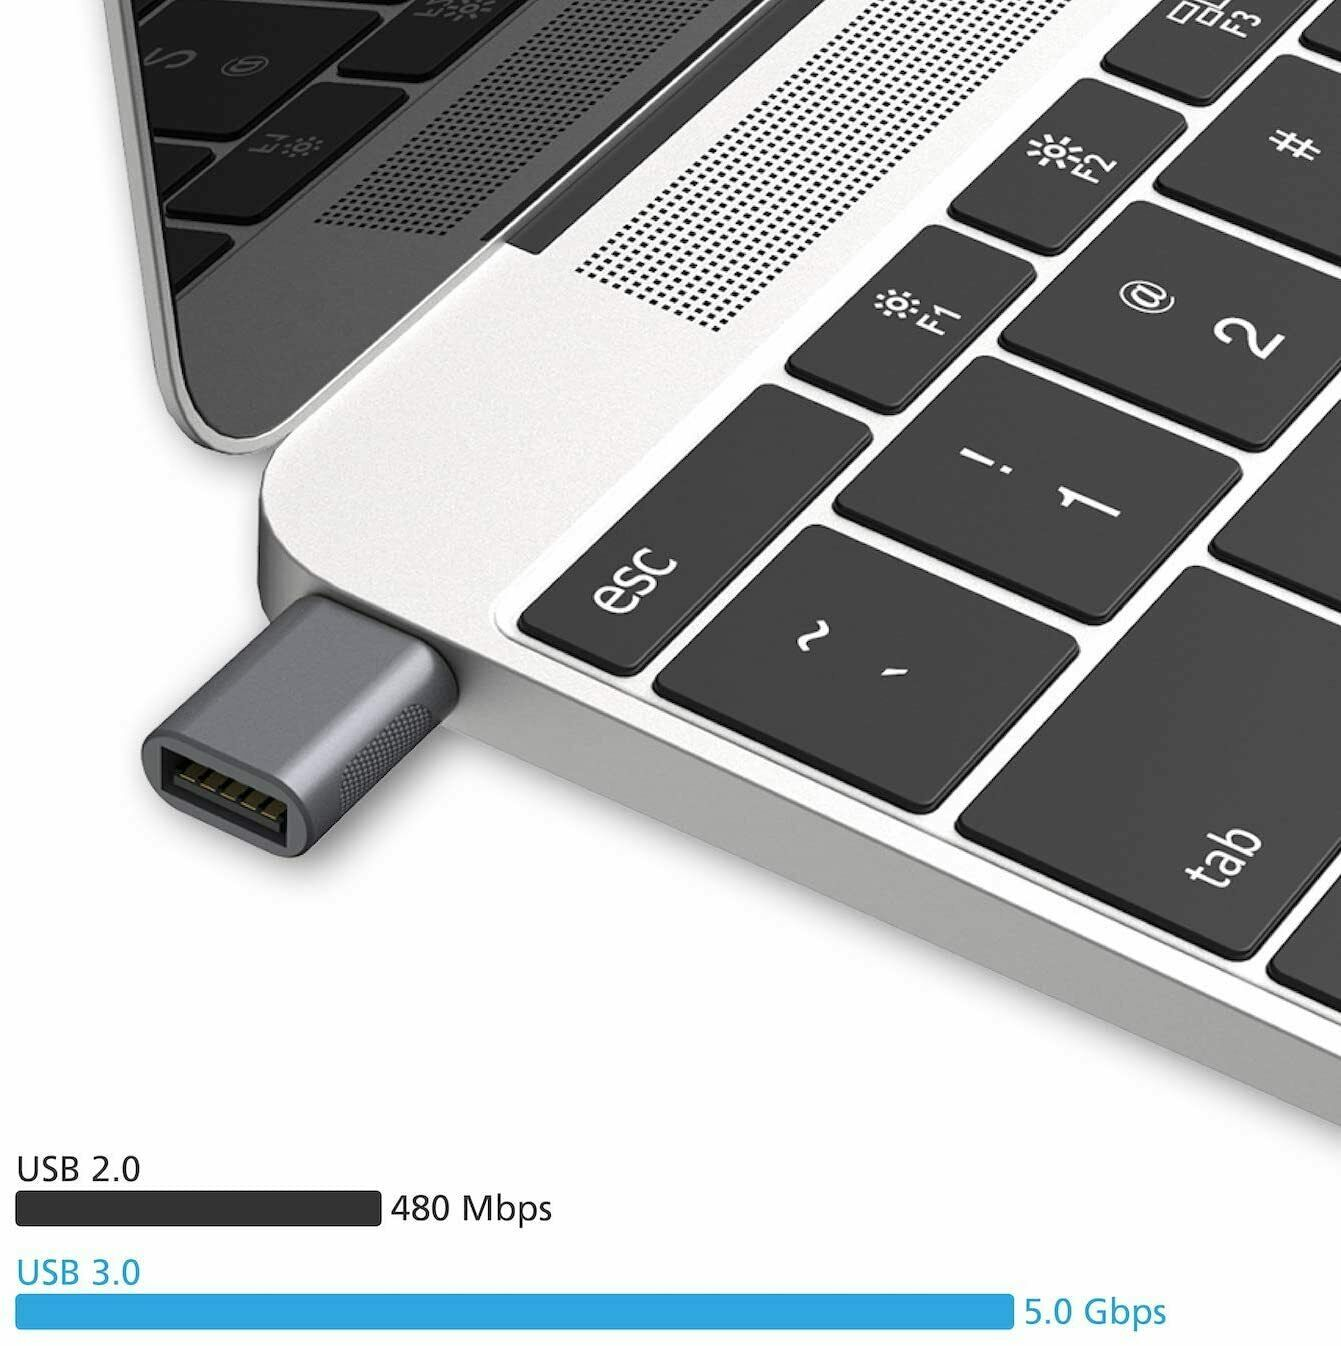 Nonda USB Type-C to USB 3.0 Type-A Mini Adapter - Space Gray